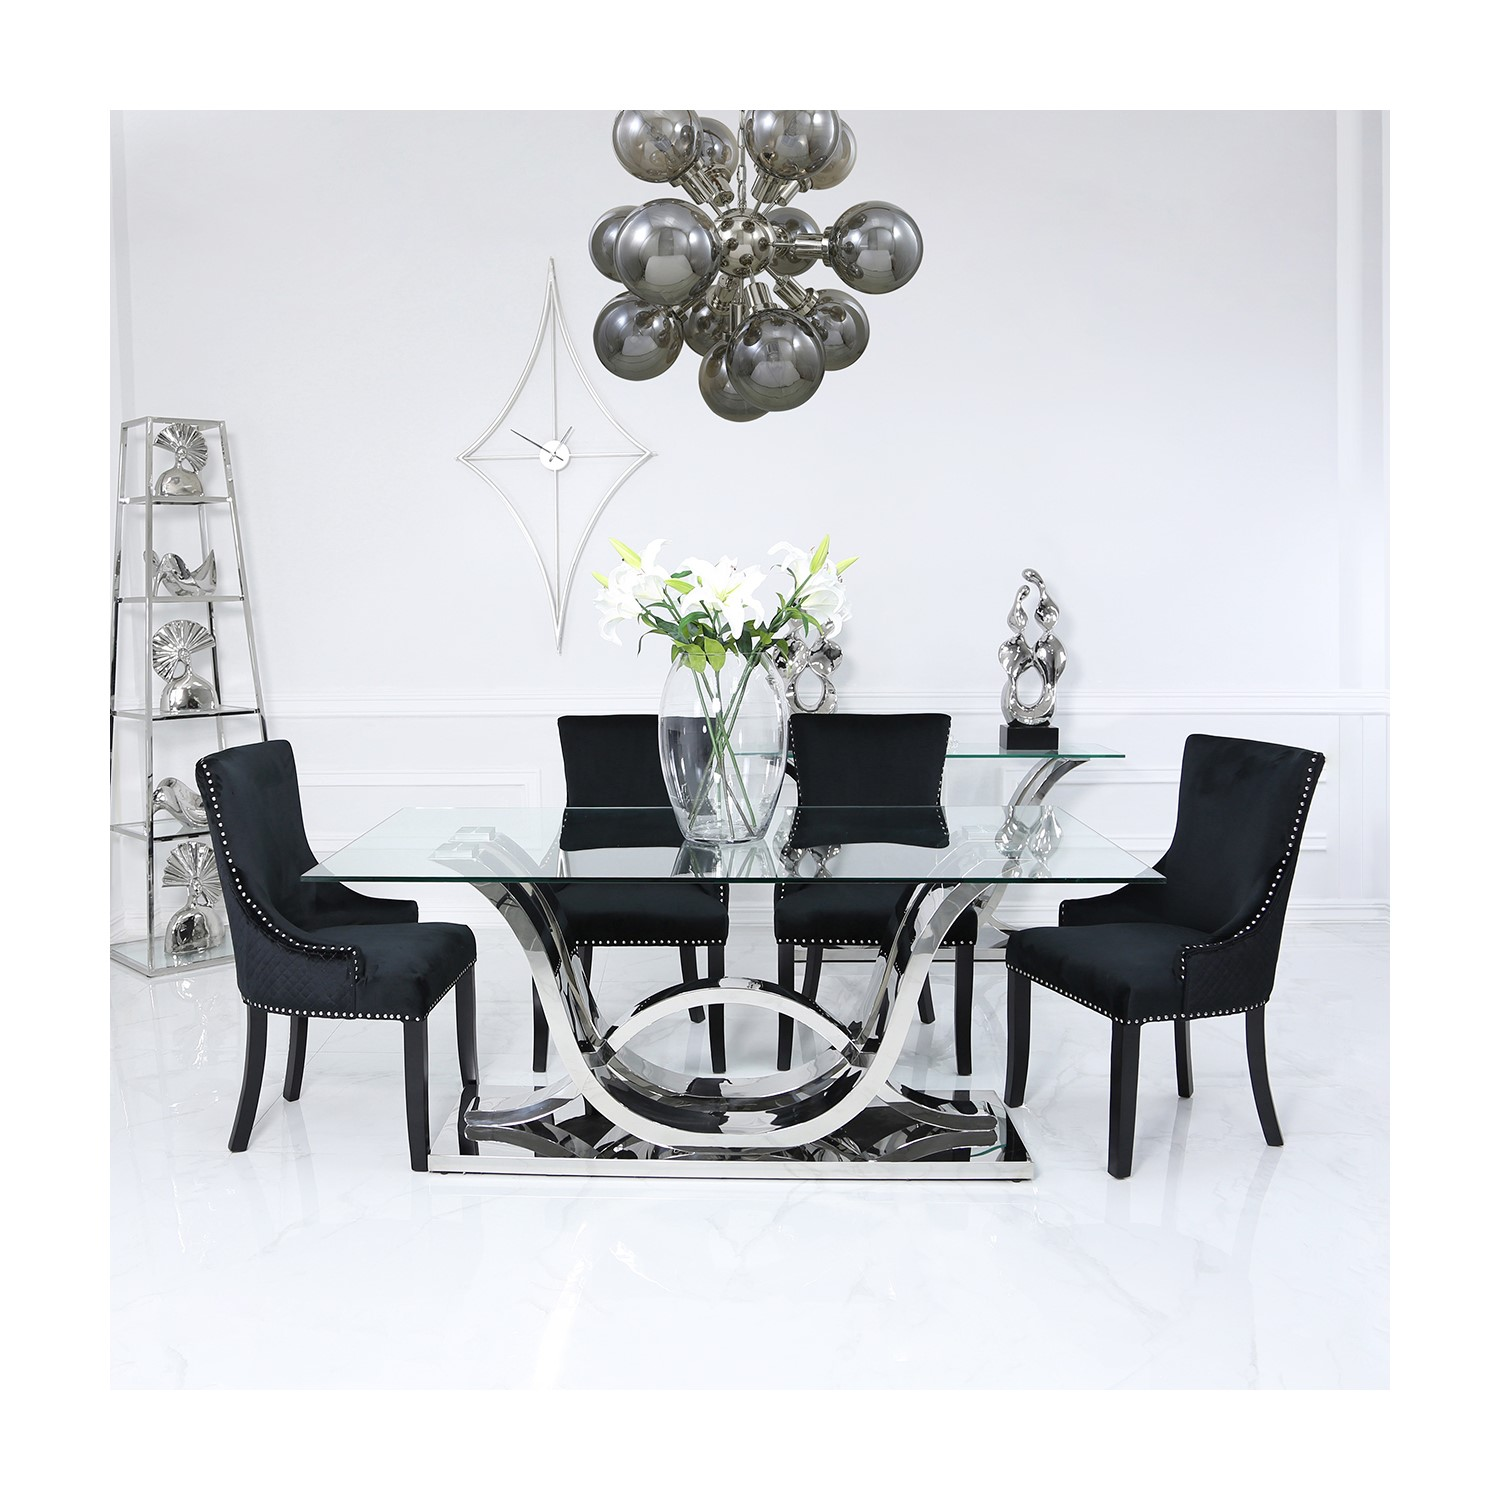 Glass Dining Table & 6 Black Velvet Chairs - Aurora Boutique